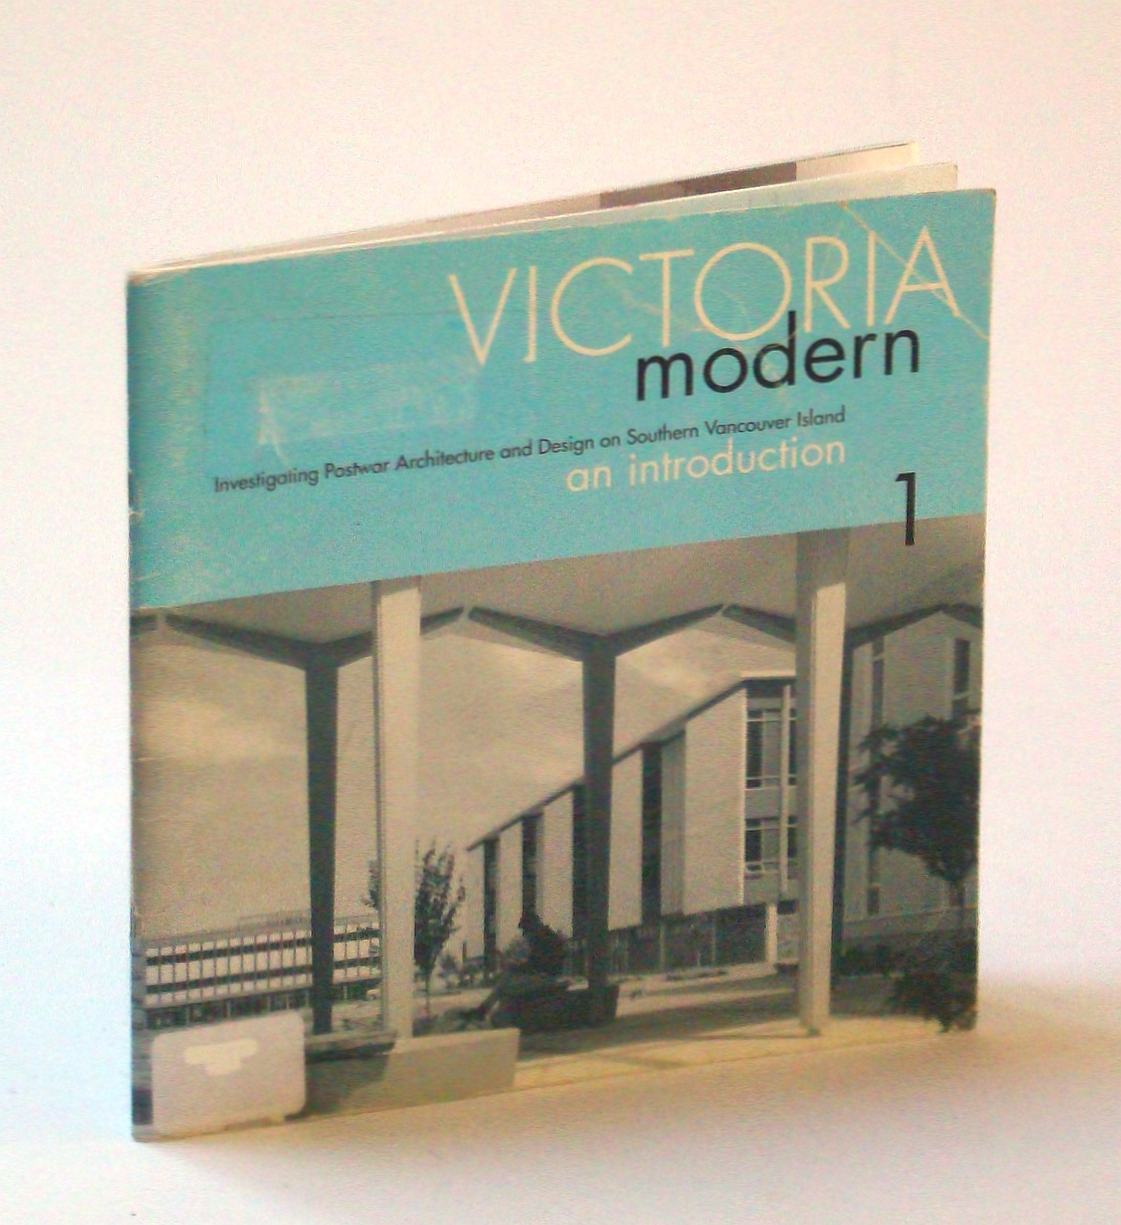 Victoria Modern : Investigating Postwar Architecture and Design on Southern Vancouver Island, an Introduction